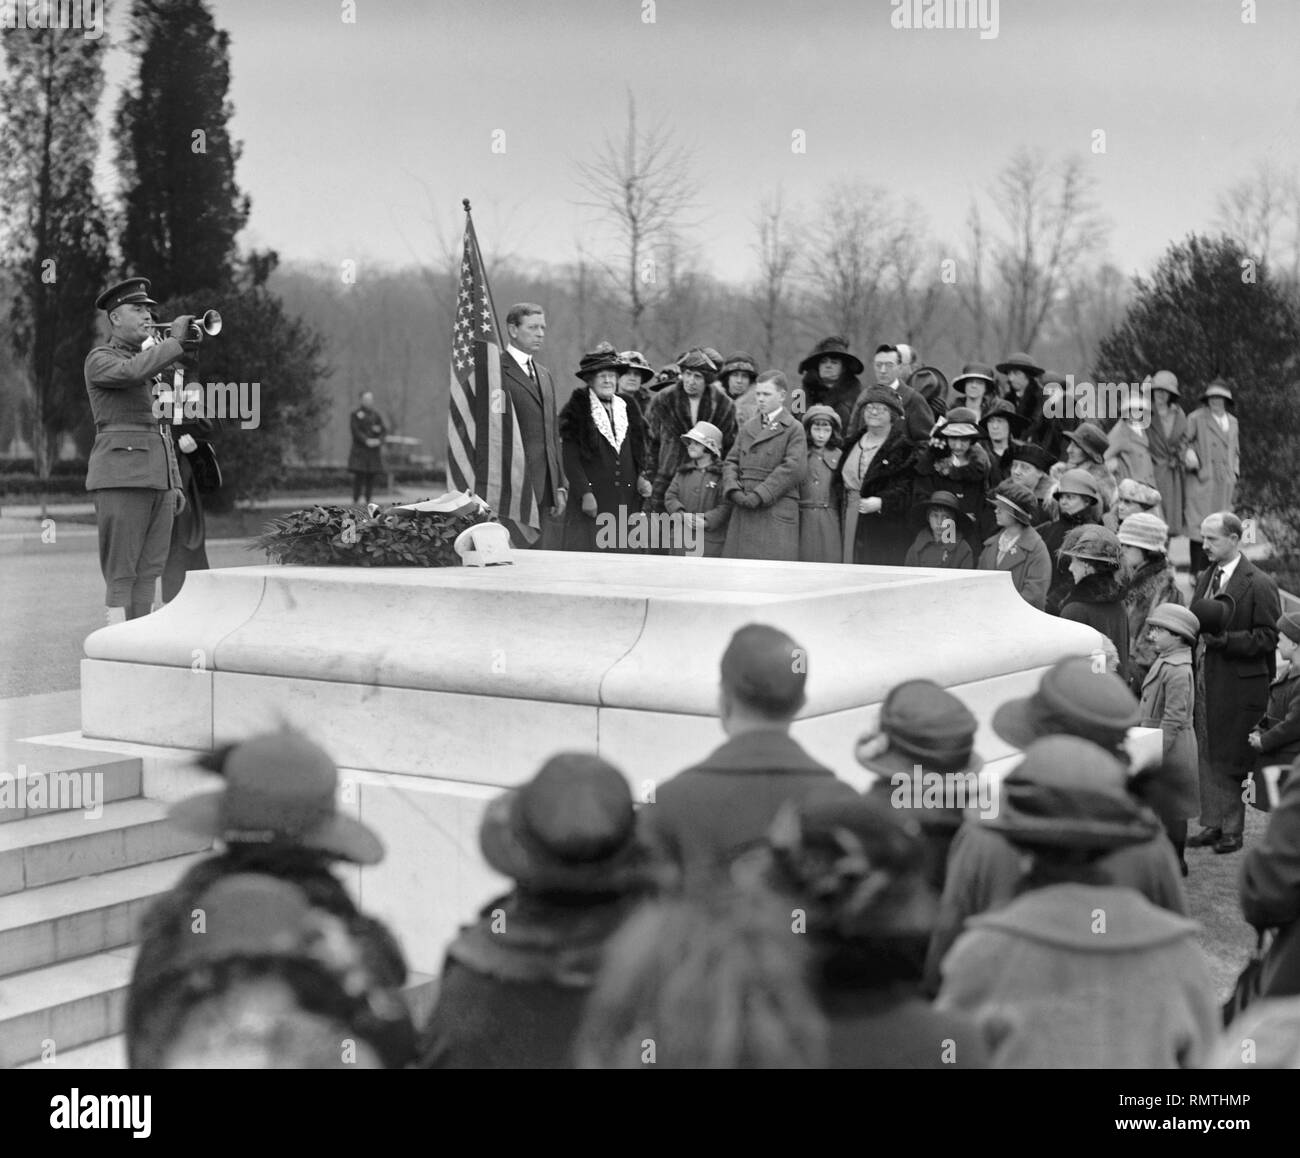 Children of American Revolution at Tomb of Unknown Soldier, Arlington National Cemetery, Arlington, Virginia, USA, National Photo Company, April 16, 1923 - Stock Image